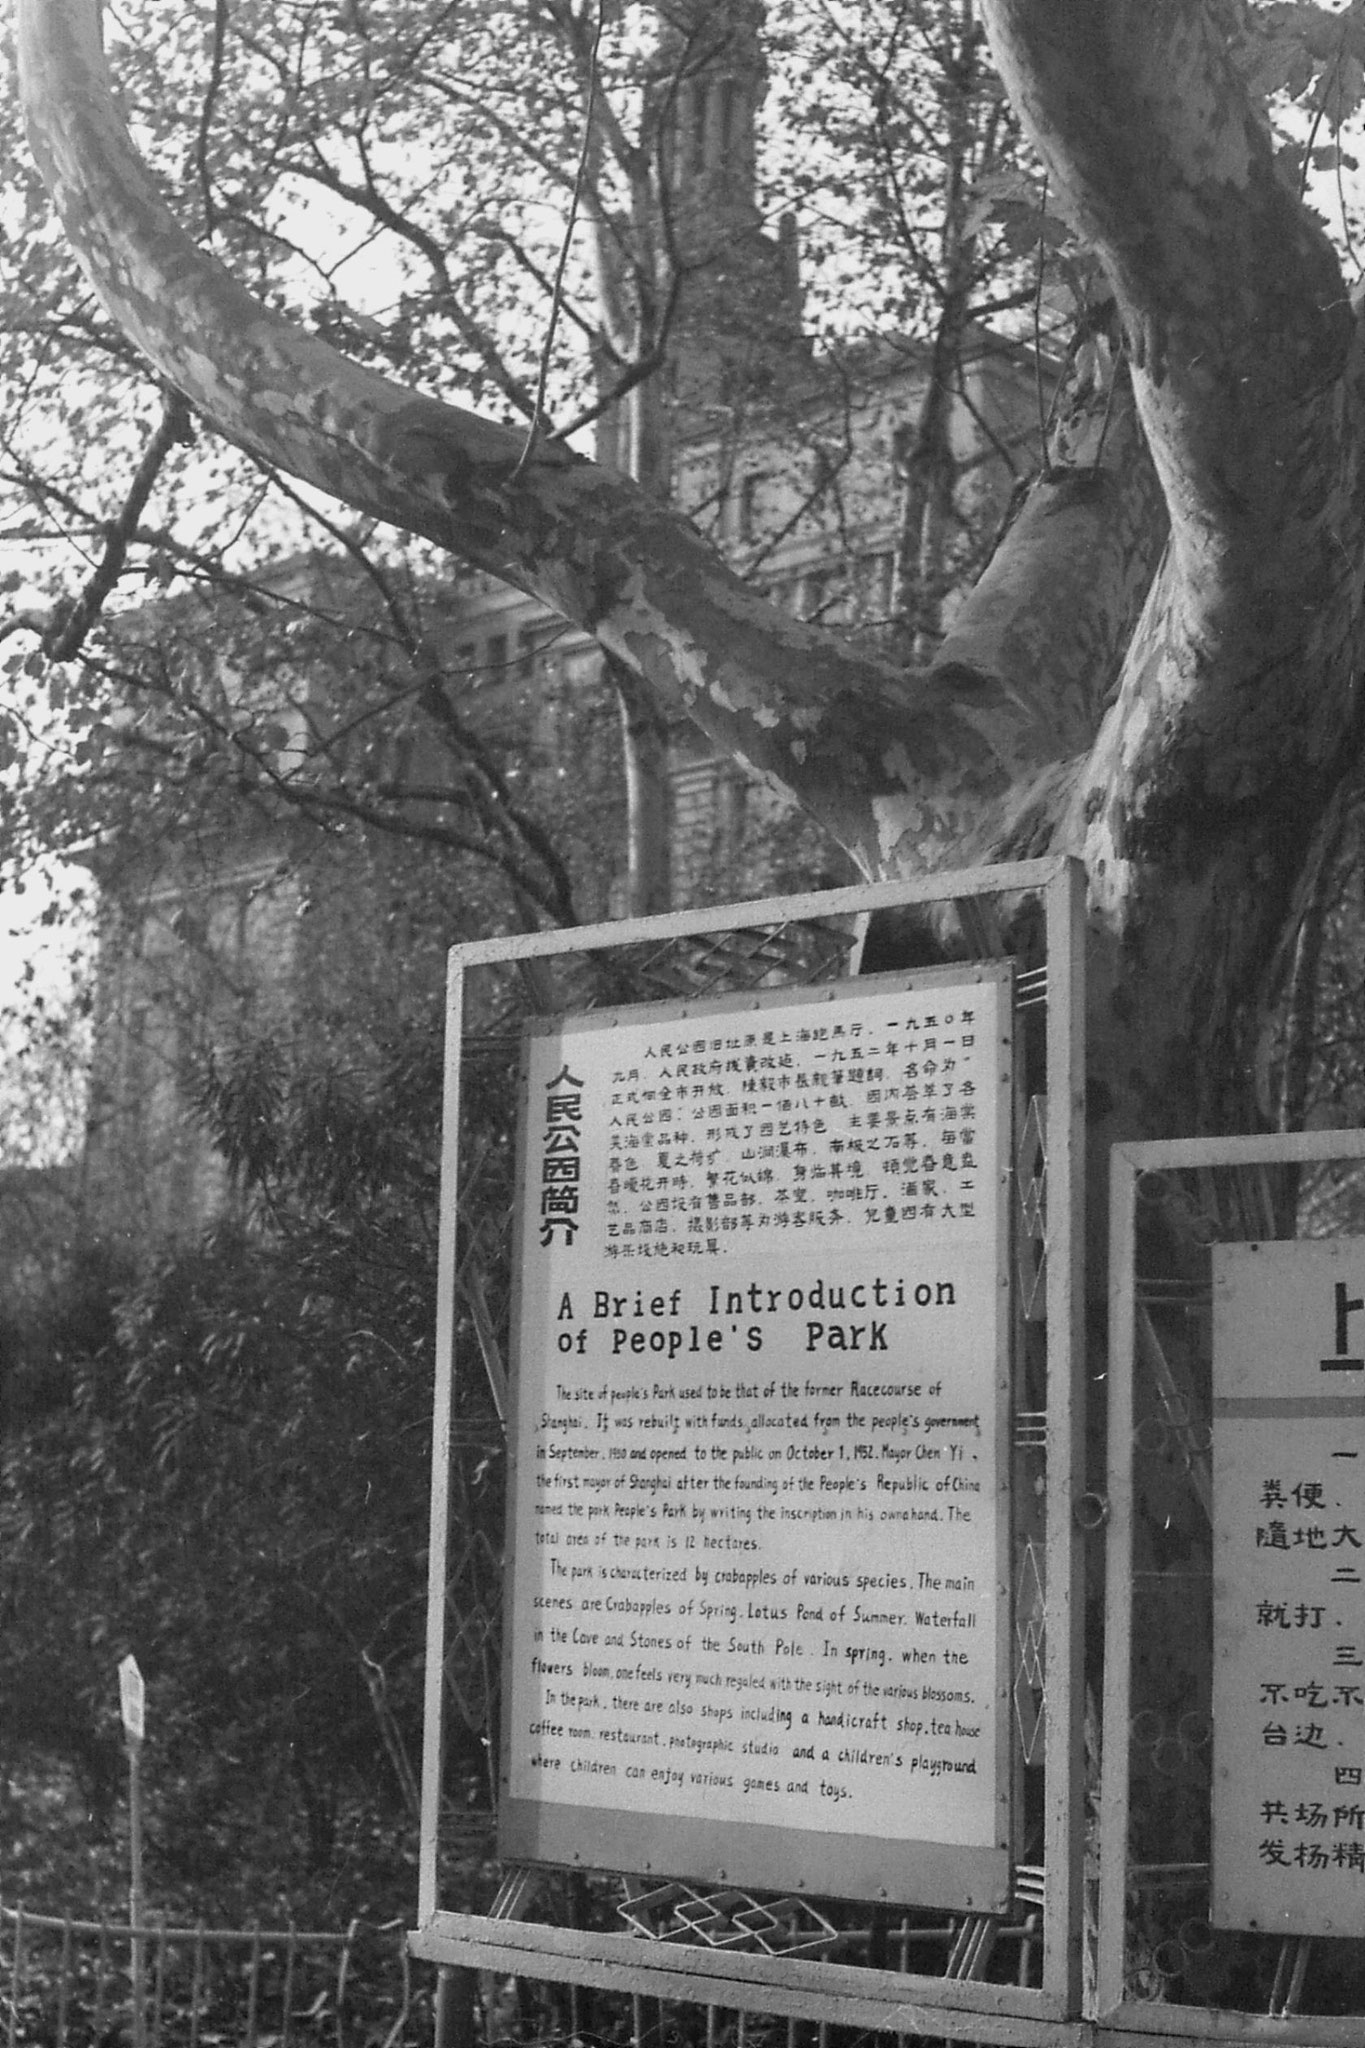 14/12/1988: 30: Shanghai, notice in Old Racetrack Park